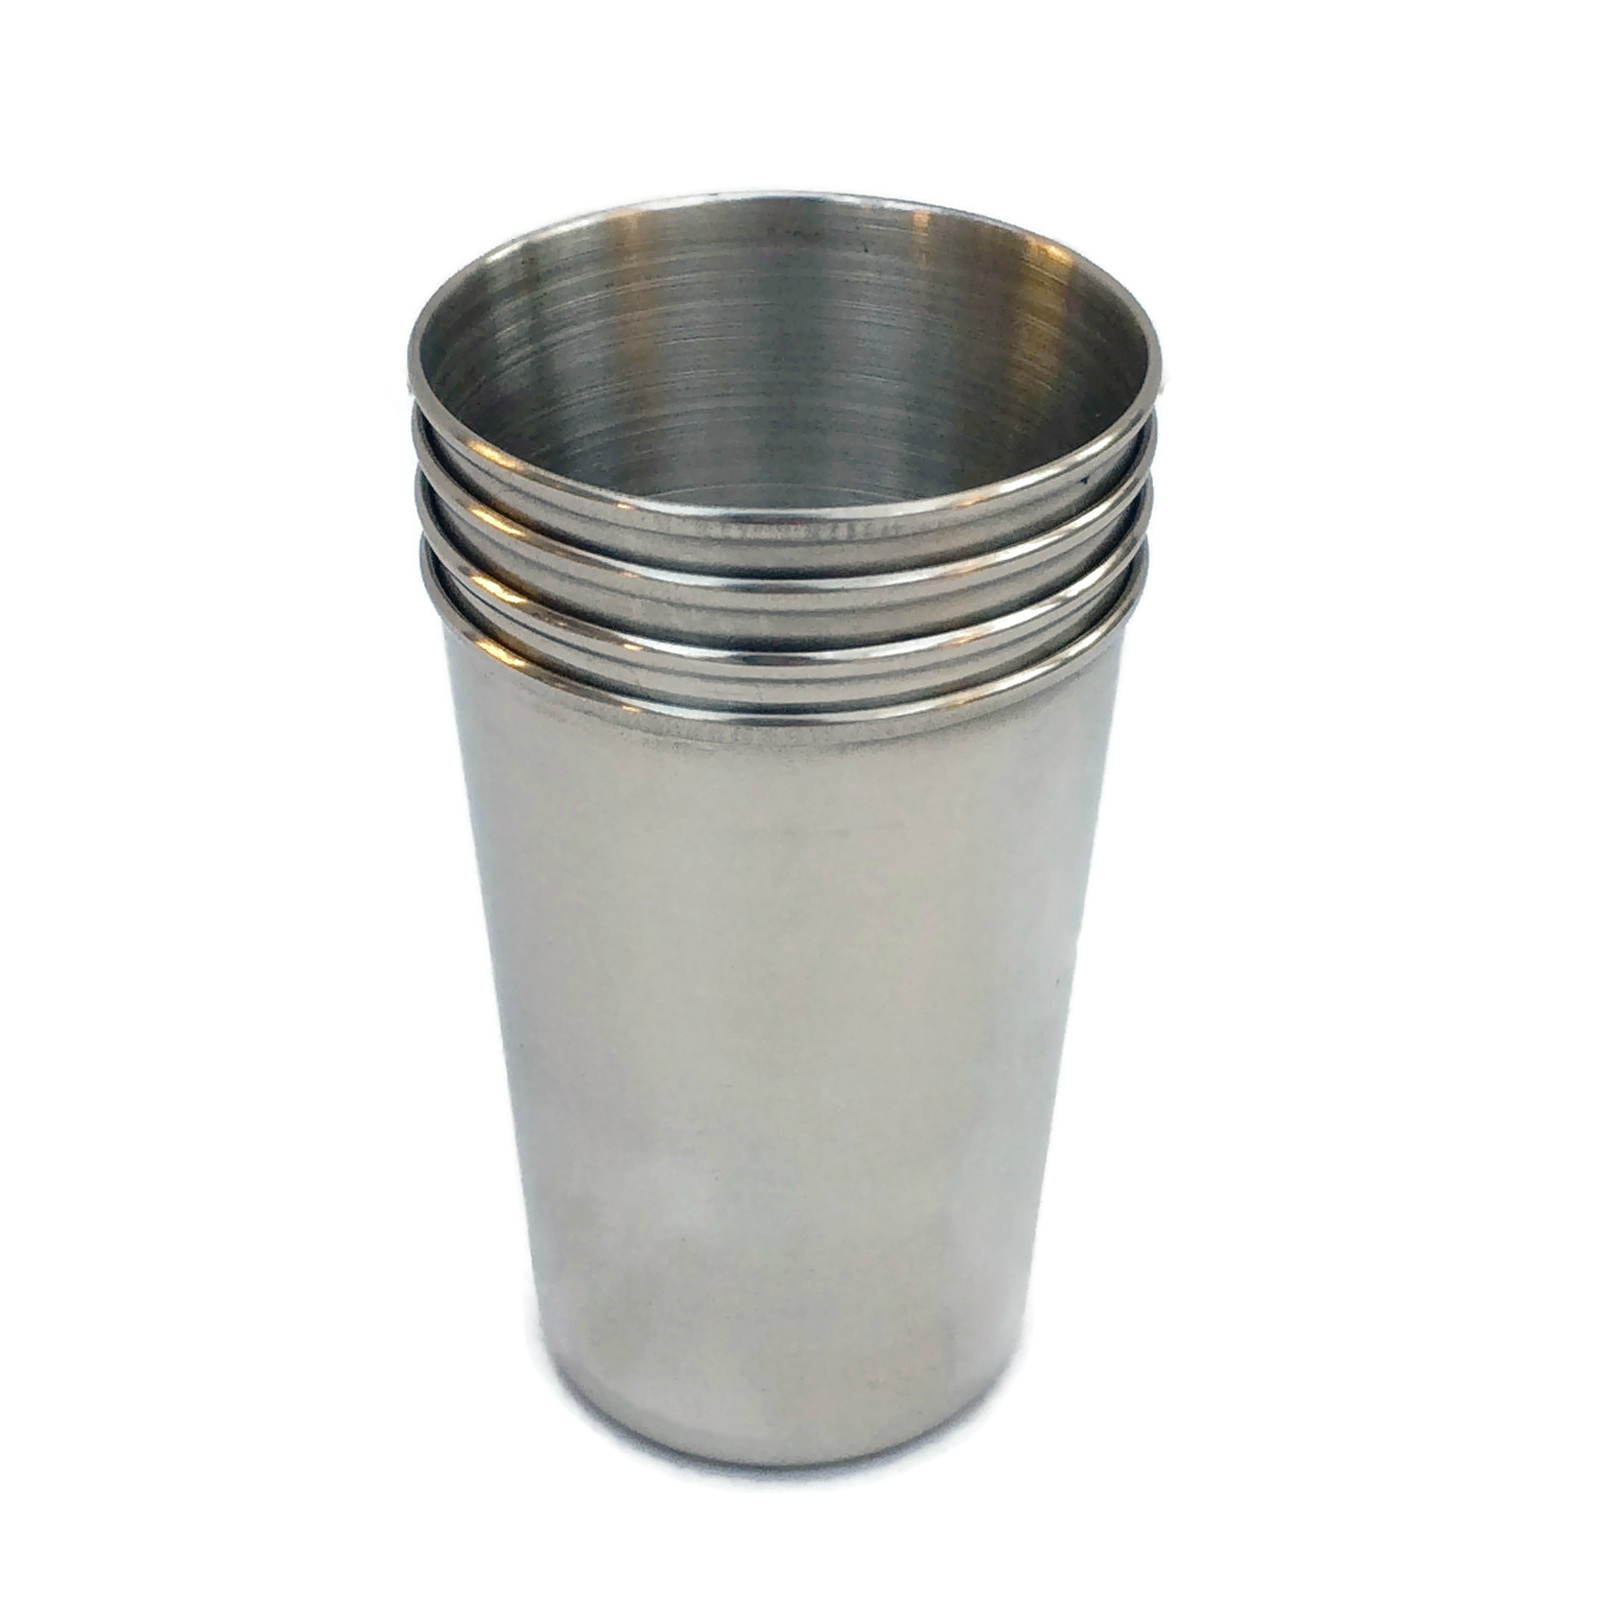 Stainless Steel Cups For Kids And Toddlers Small Safe